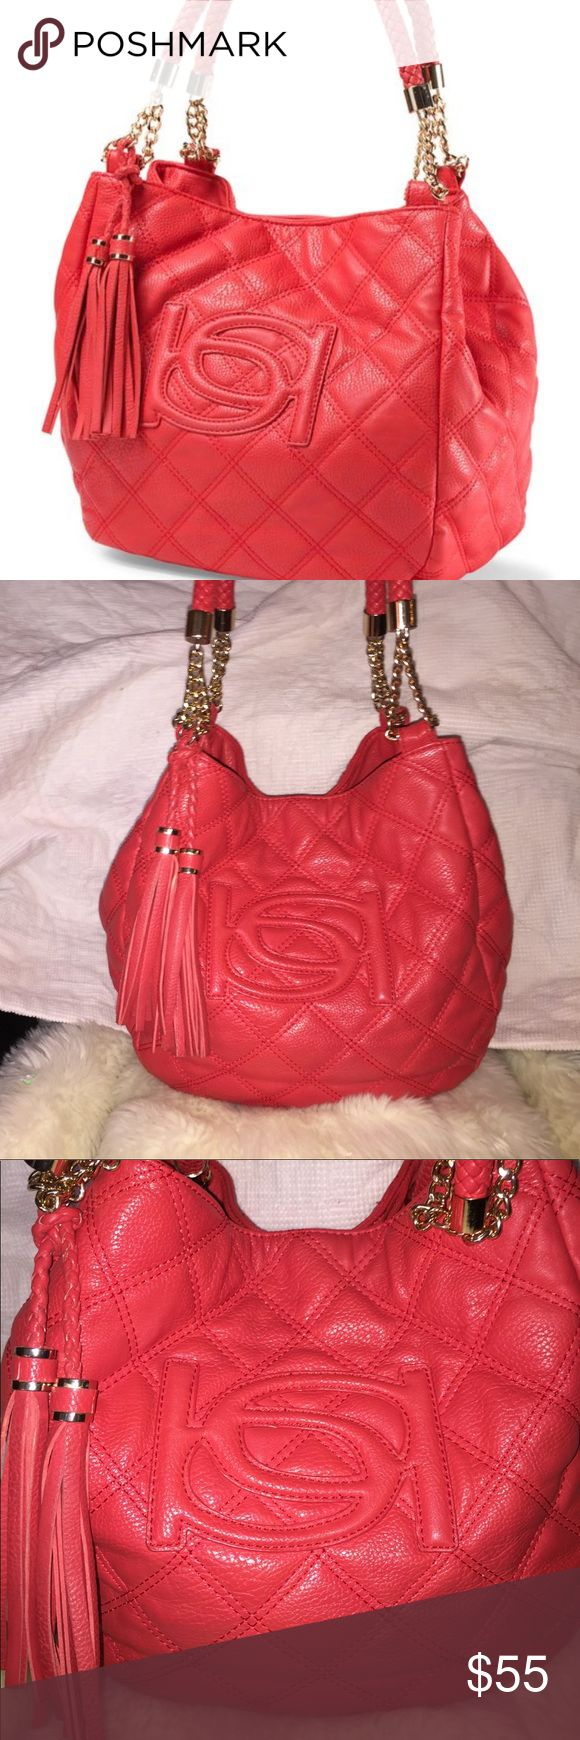 Bebe quilted red shopper. ♥️♥️♥️ Bebe, red, quilted shopper. Tassel and gold chain and hardware details. Inside has one zip close pocket and two open pockets. Four, button feet. One small pen mark on outside, end panel, which is difficult to see-please see picture and use zoom! This is a nice, big bag measuring 18x11 flat; bottom 6x10; handle drop 10. ♥️♥️♥️ catf bebe Bags